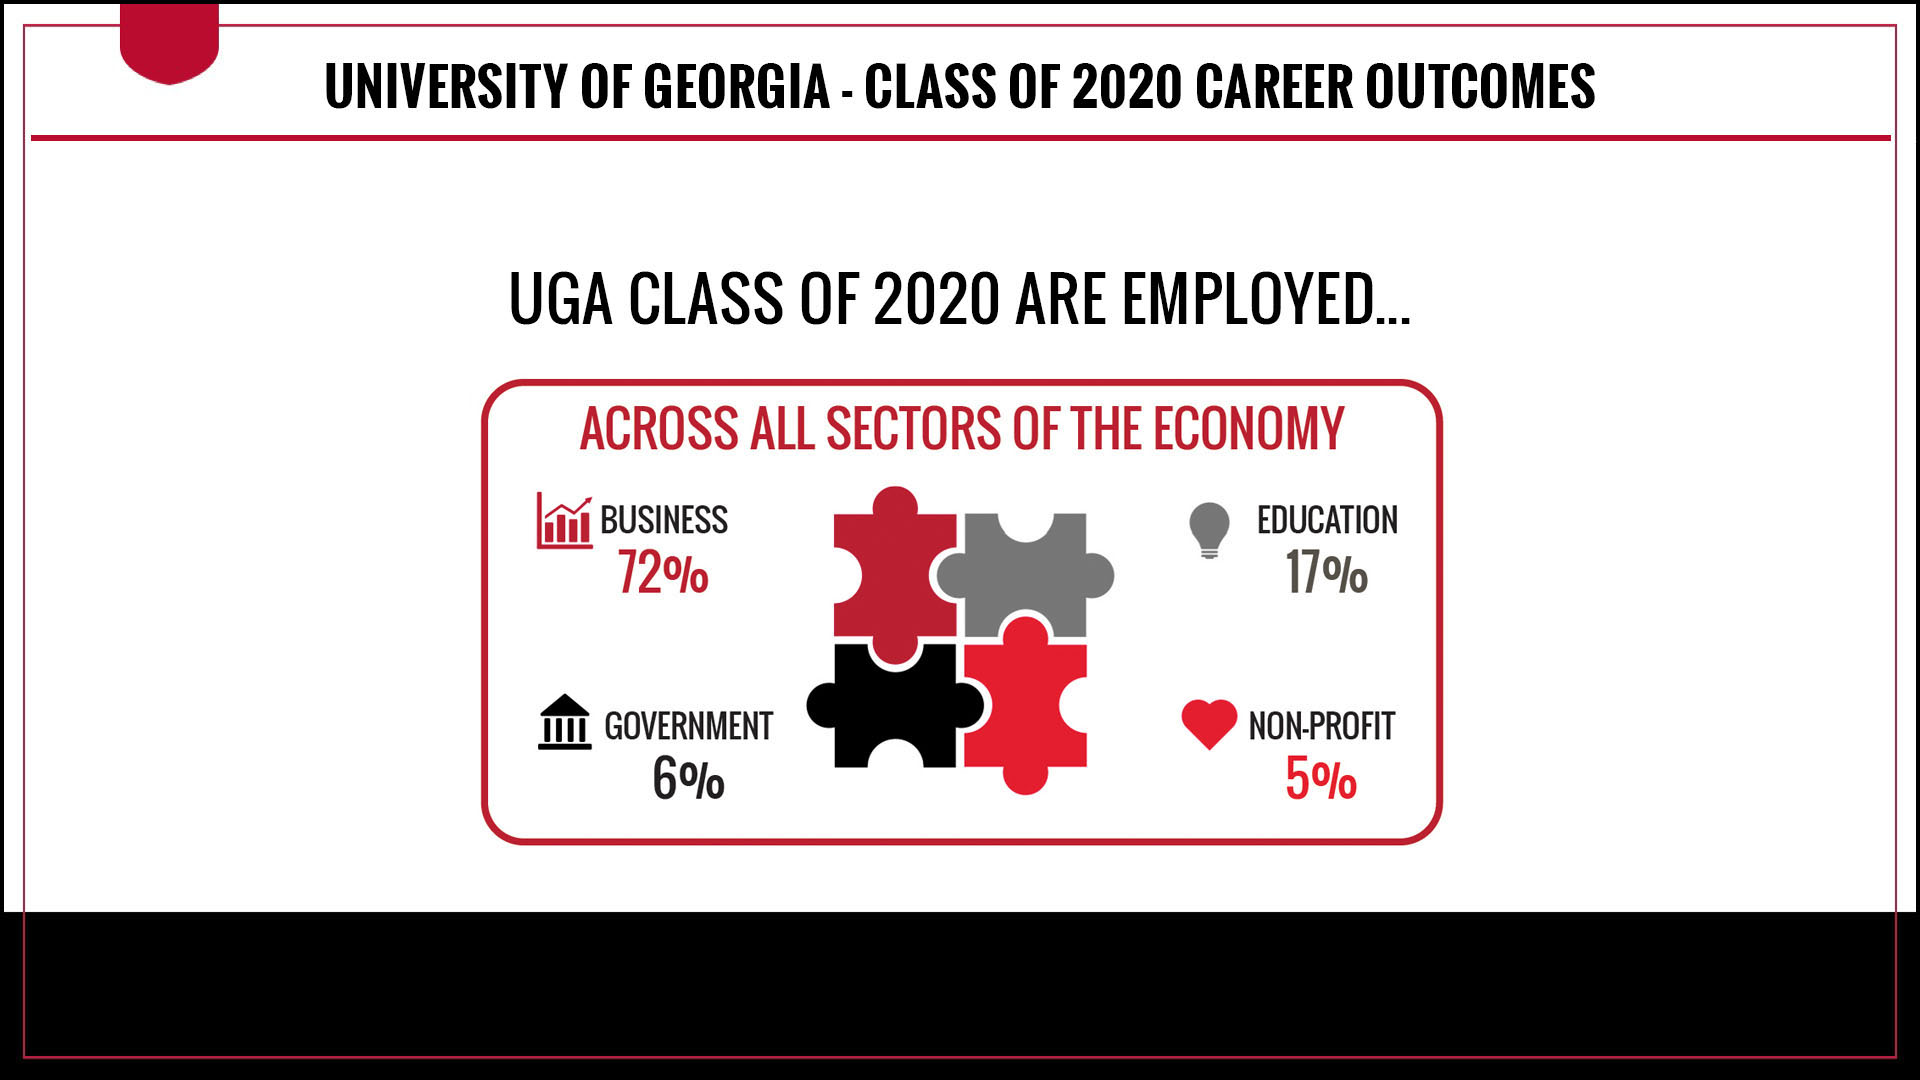 Class of 2020 graduates are working across all sectors of the economy. 72 percent of full-time employed graduates are working in the business sector, 17 percent are working in the education sector, 6 percent are working in the government sector and 5 percent are working in the non-profit sector.